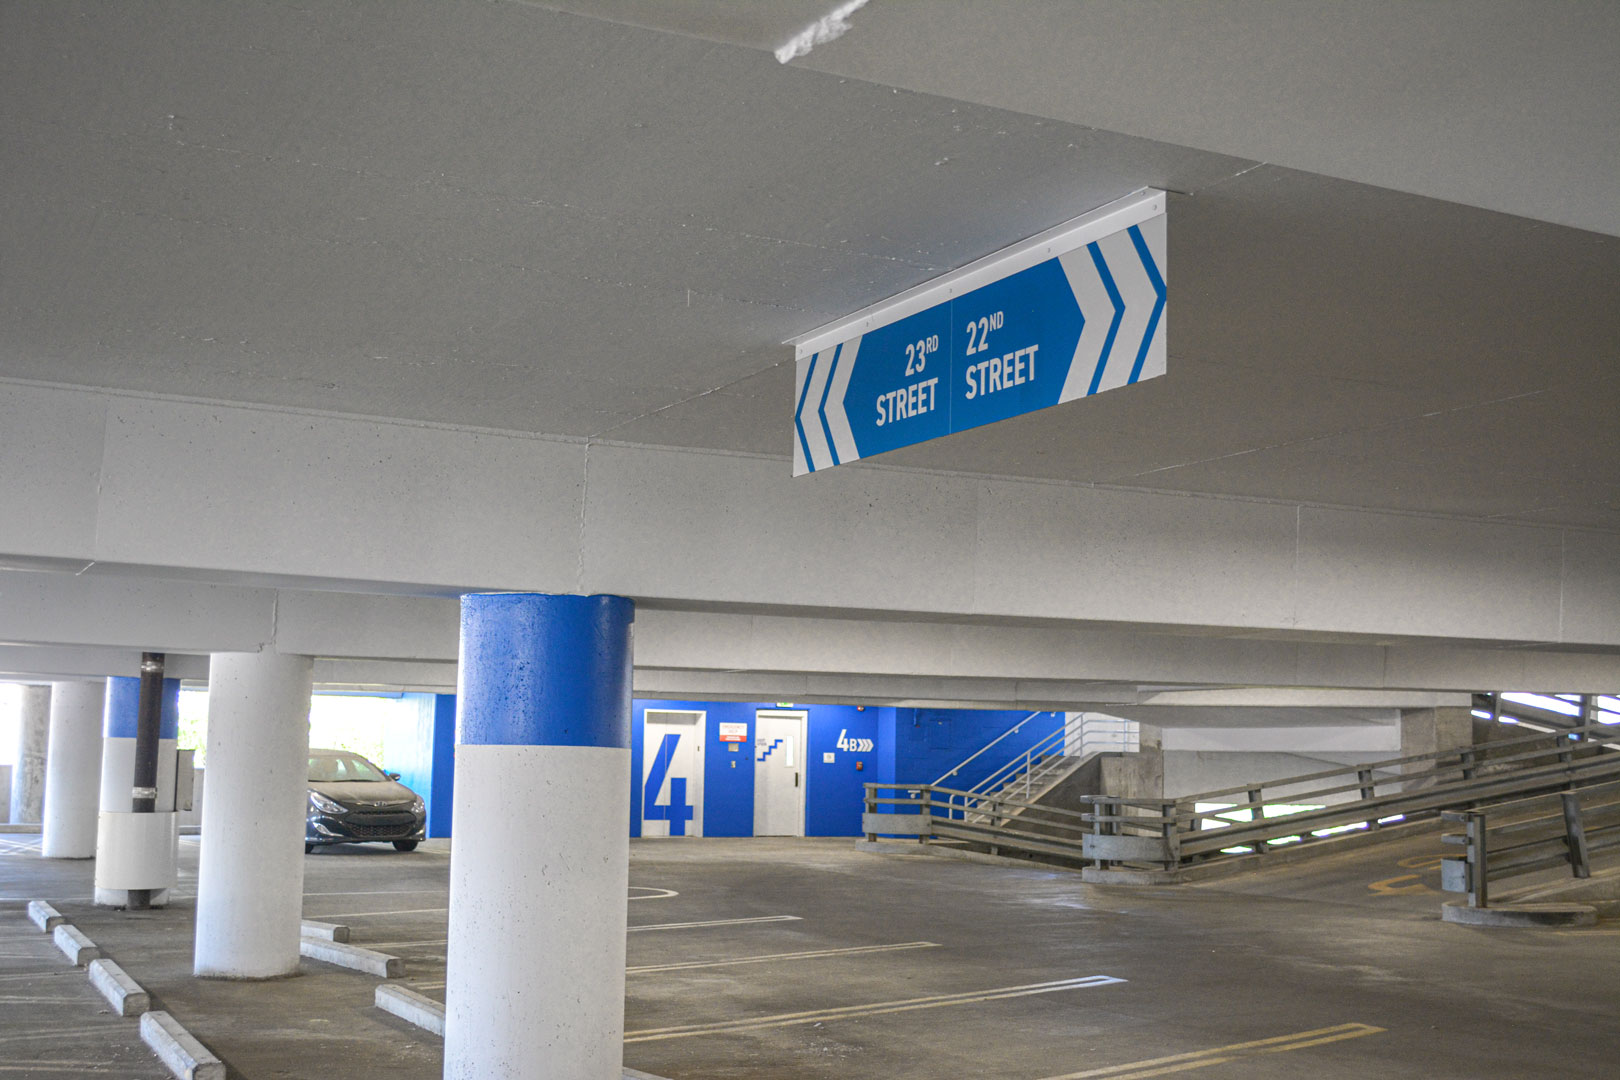 Overhead directional signage and elevator lobby with large level ID graphics in the 22nd street BJCC parking deck